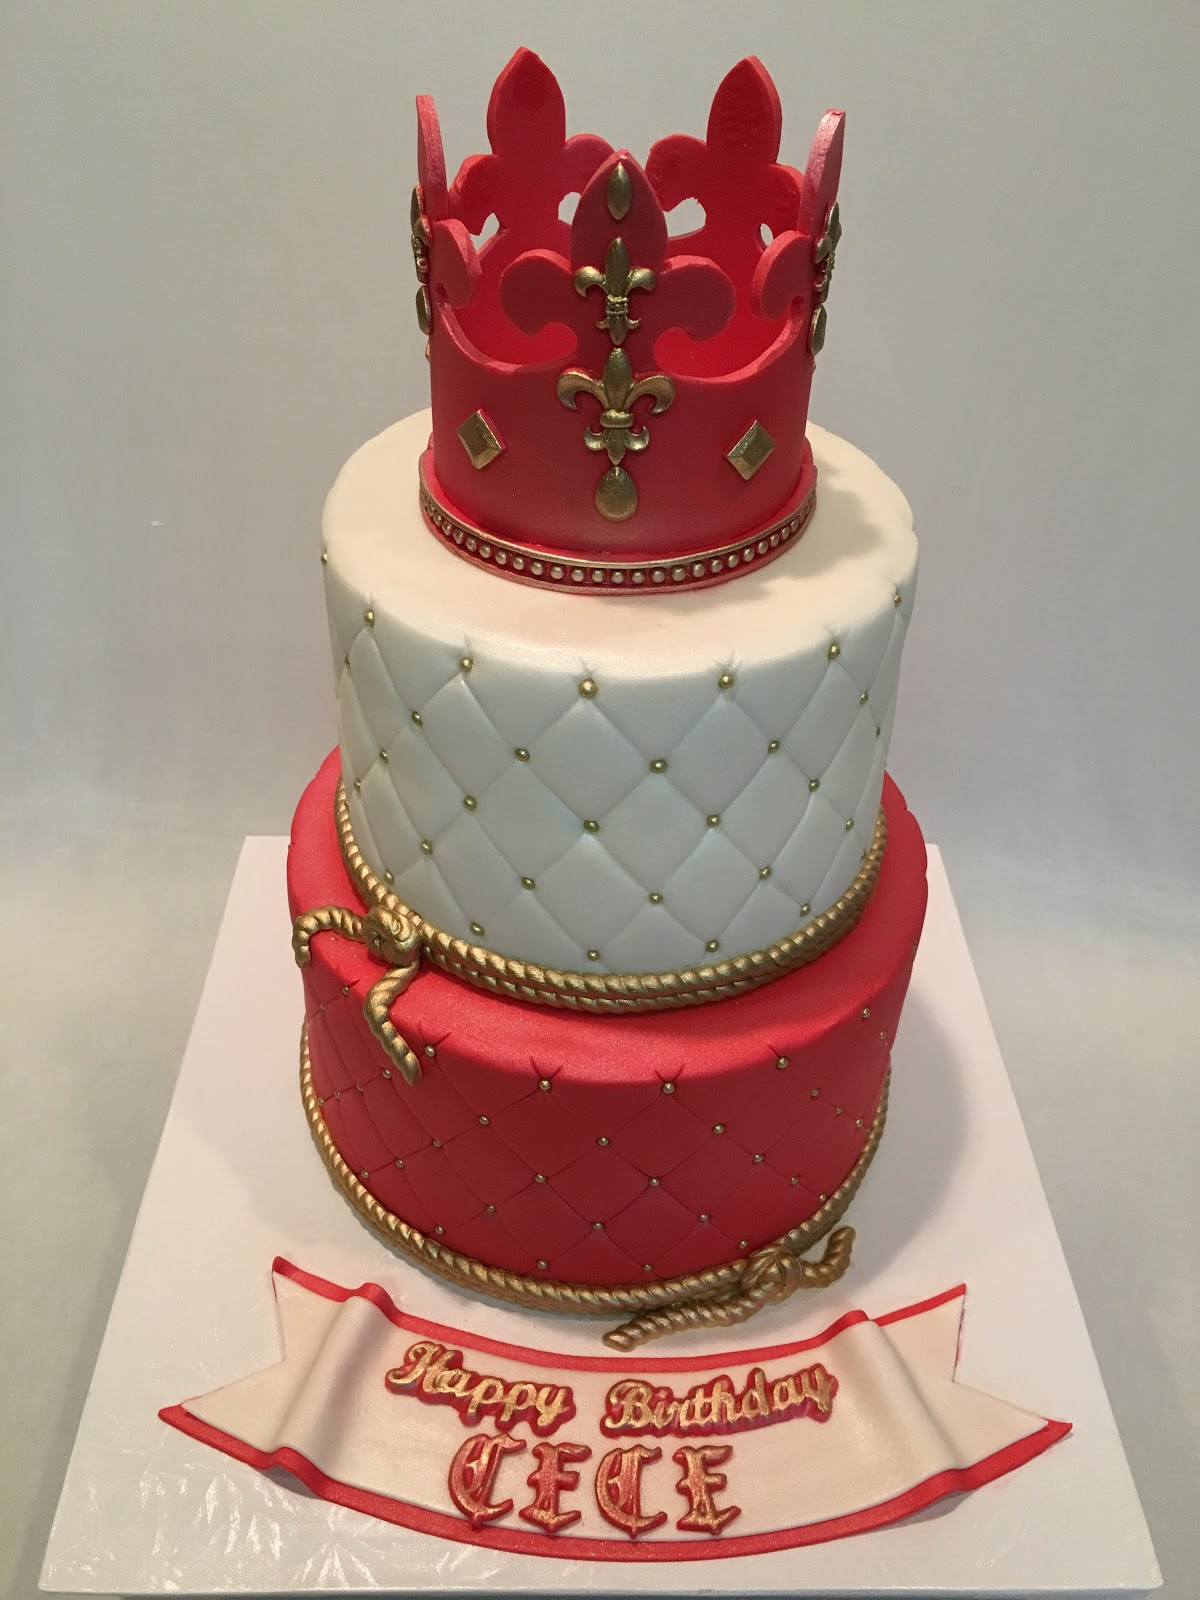 Cake With Crown Royal : MyMoniCakes: Fit for a king cake. Red crown Royal Cake